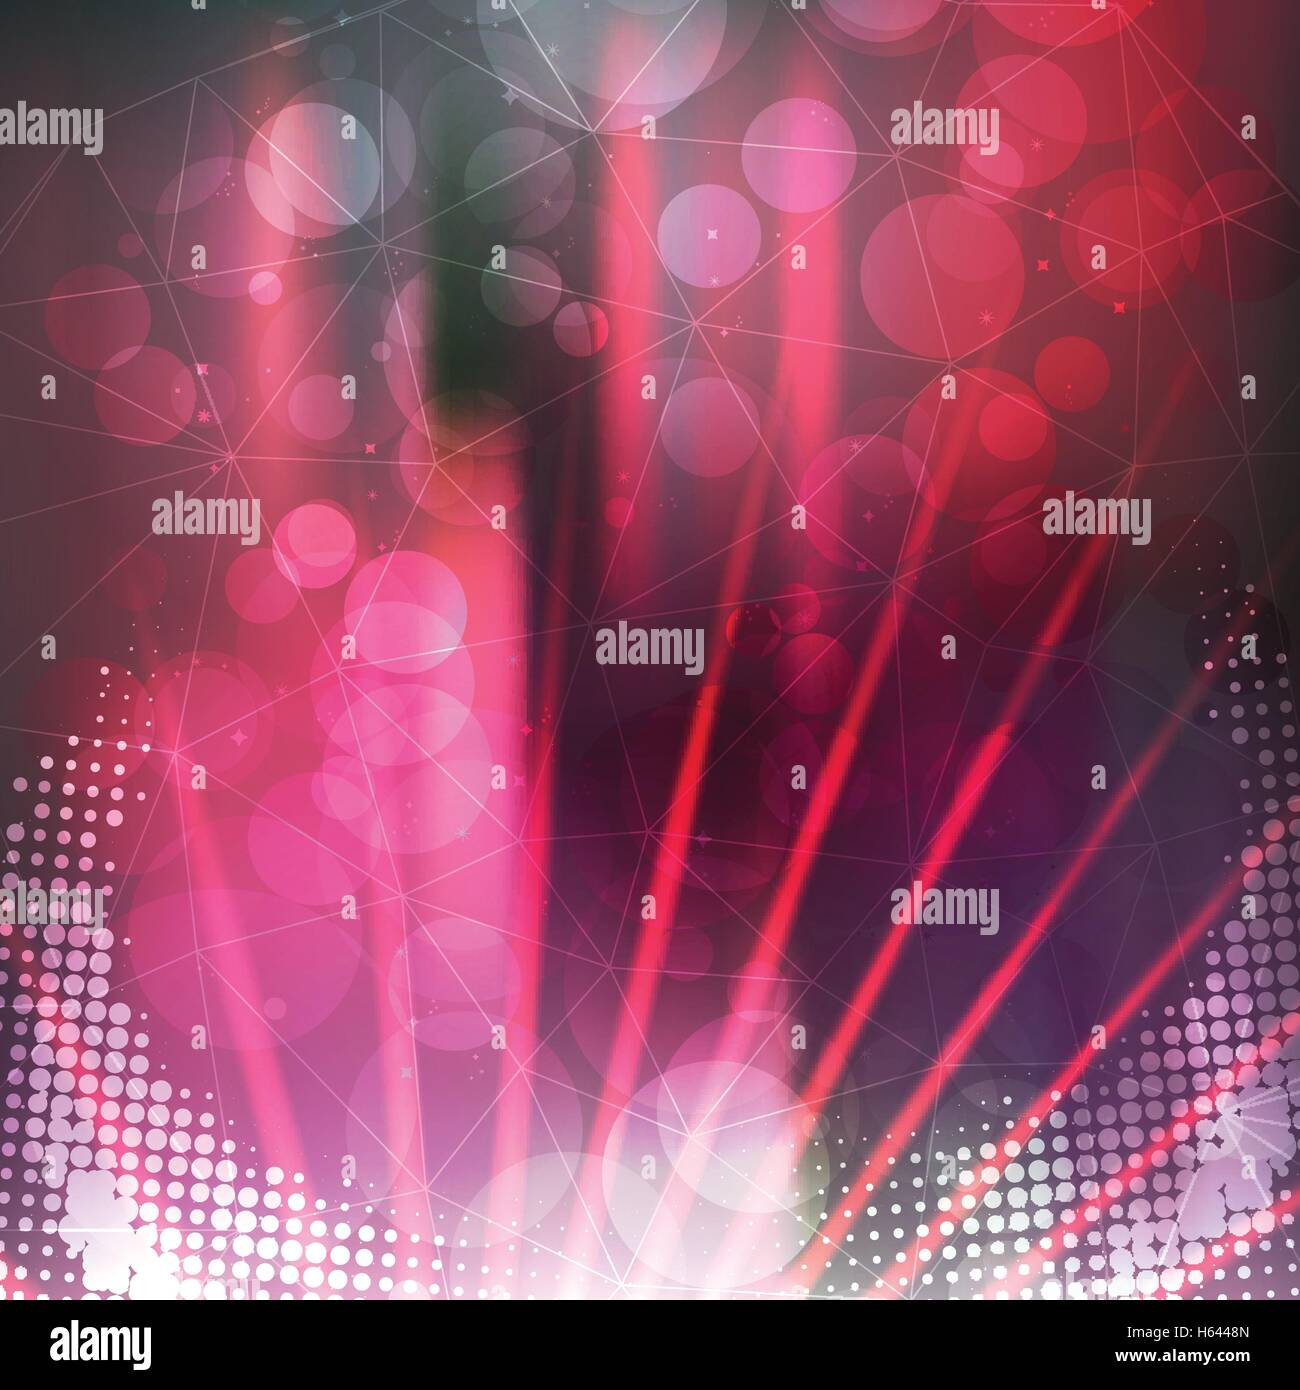 Disco Party Poster Background Template - Vector Illustration Stock ...